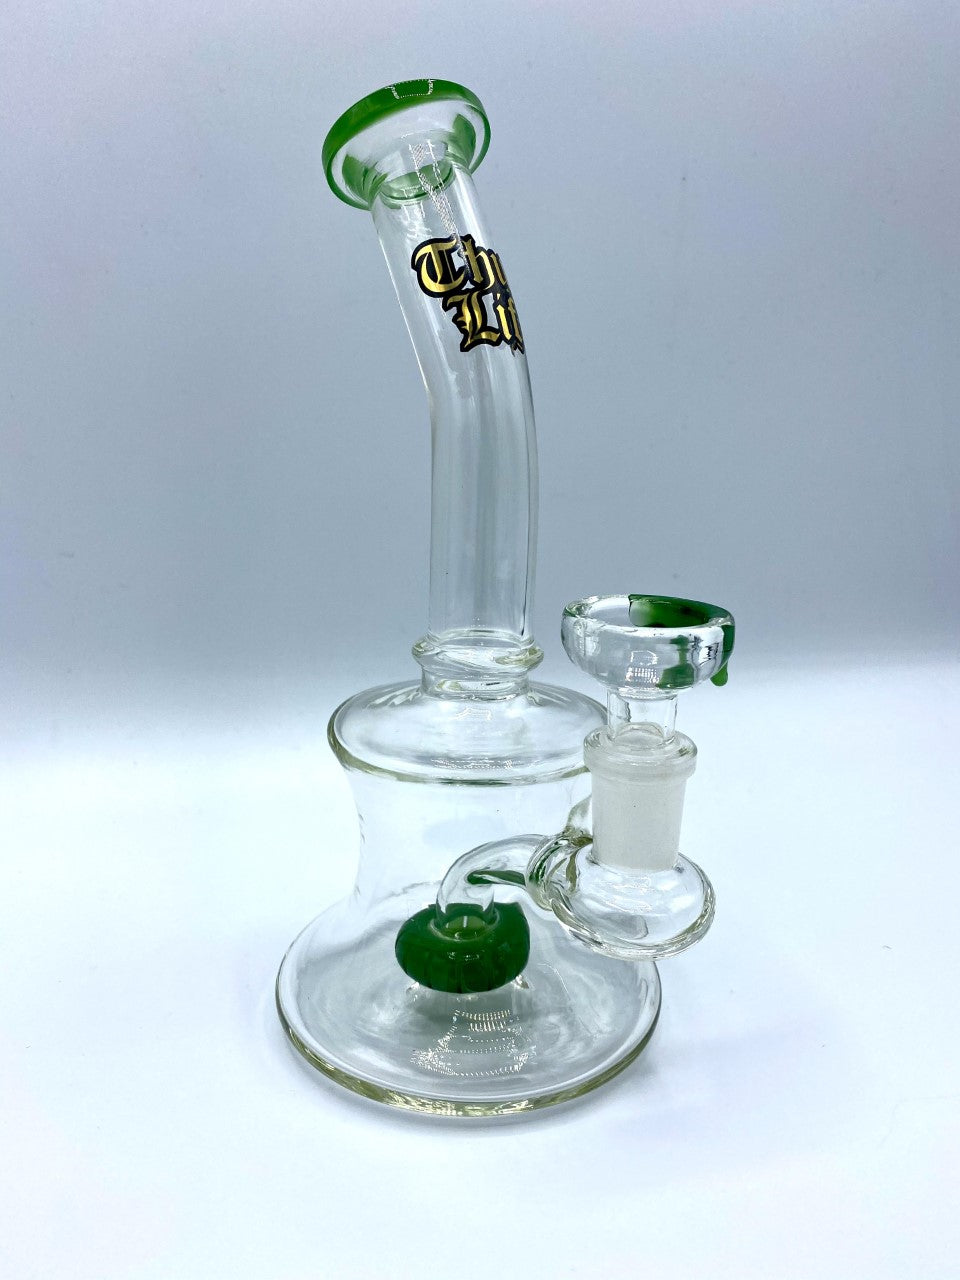 THUG LIFE 18cm Green Beaker Glass Waterpipe